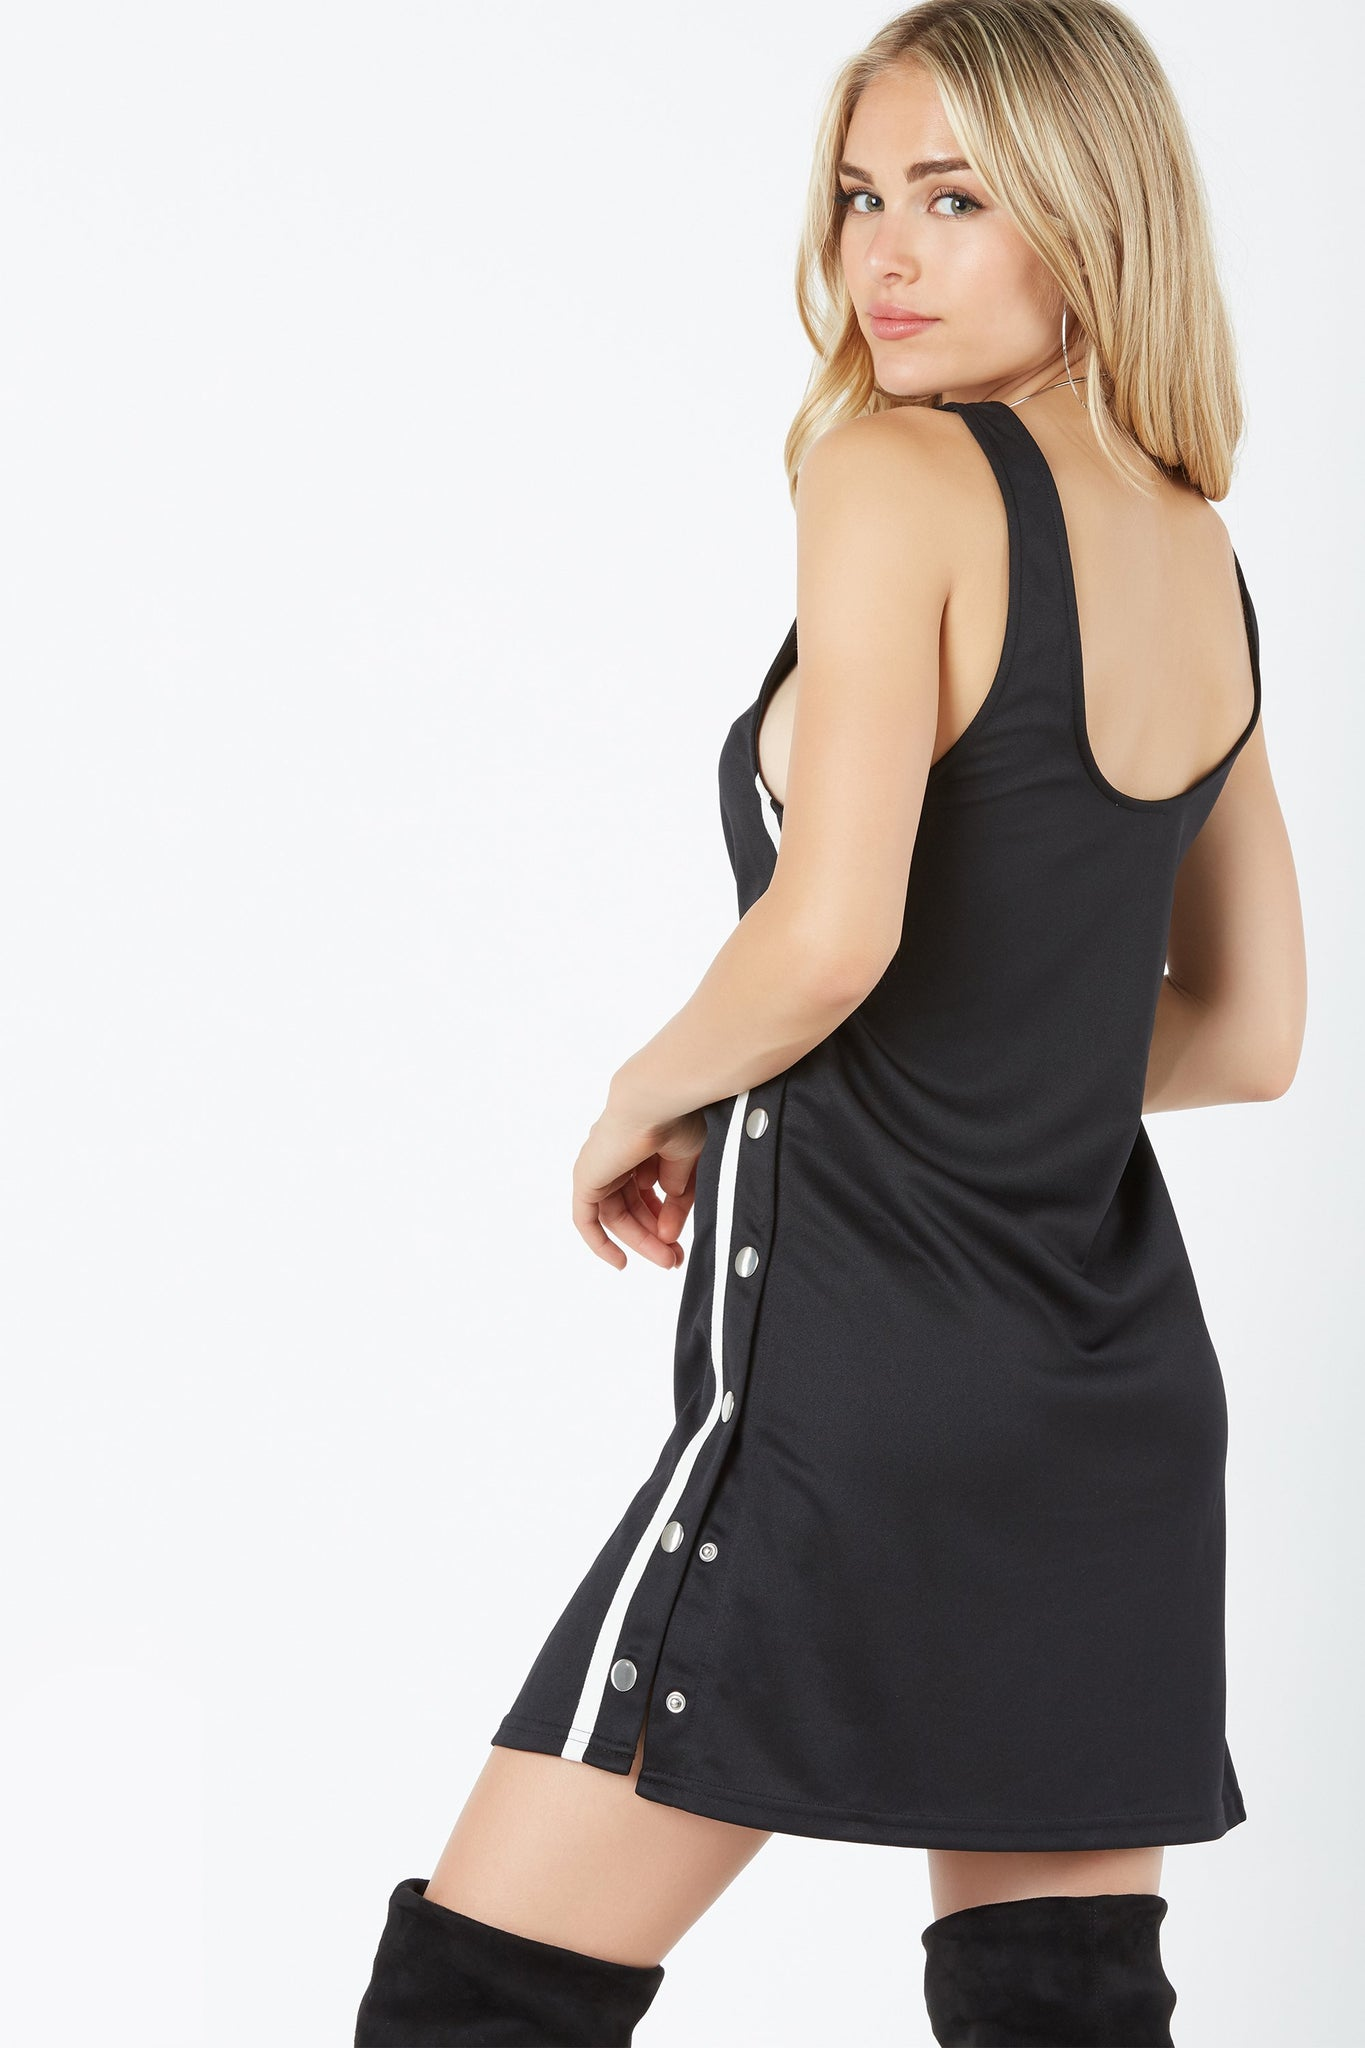 Sleevess tennis style dress with trendy snap button detailing down each side. U-neckline with straight hem finish.